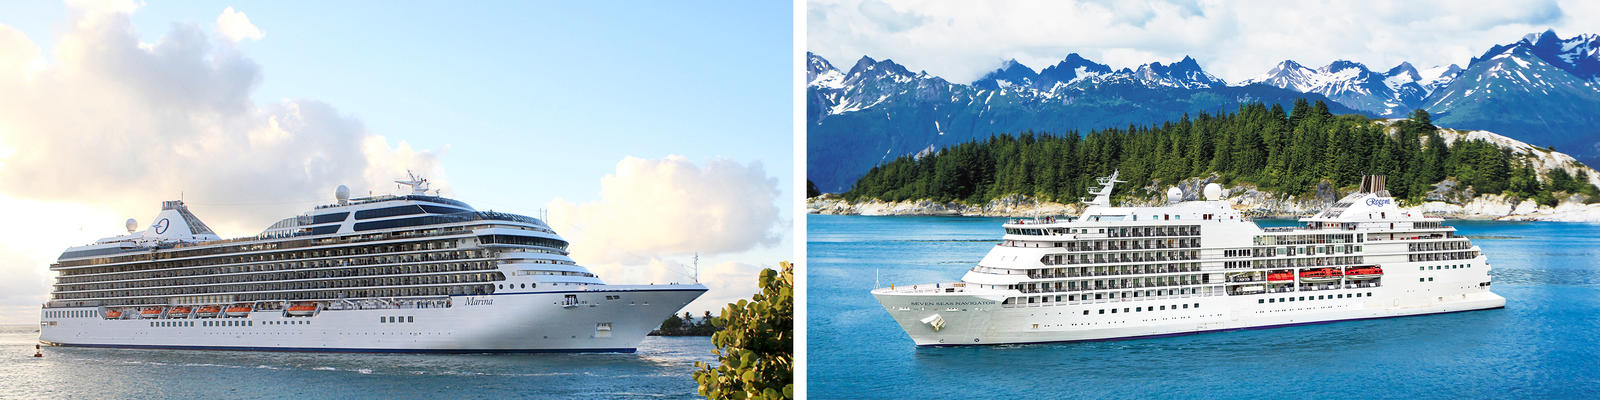 Oceania vs. Regent Seven Seas Cruises (Photo: Oceania & Regent)